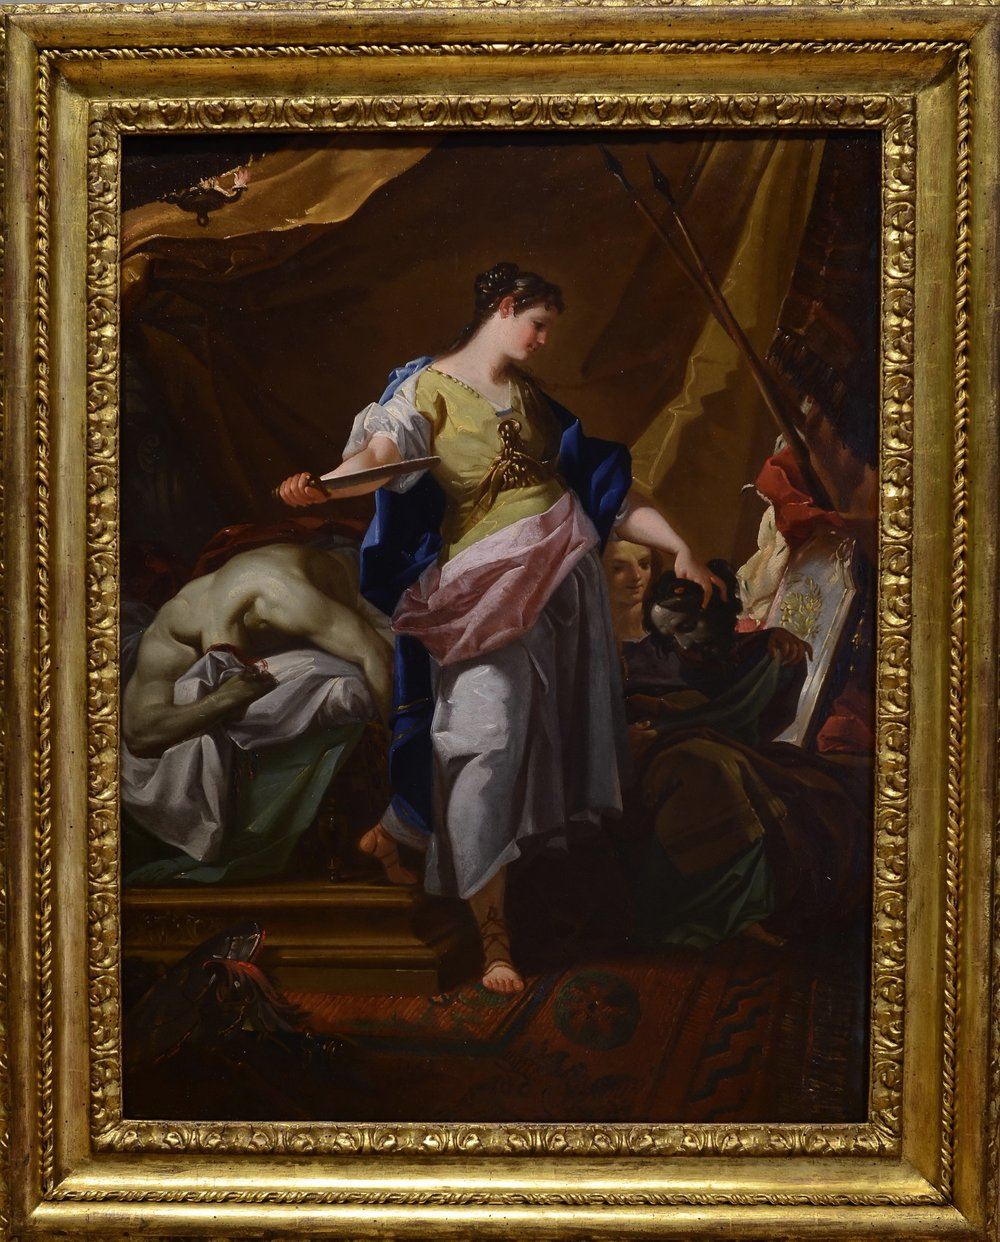 CORRADO GIAQUINTO   (Molfetta 1703 – 1766 Naples)     Judith and Holofernes     Oil on copper  35 1/8 x 26 3/8 inches  (89 x 67 cm)